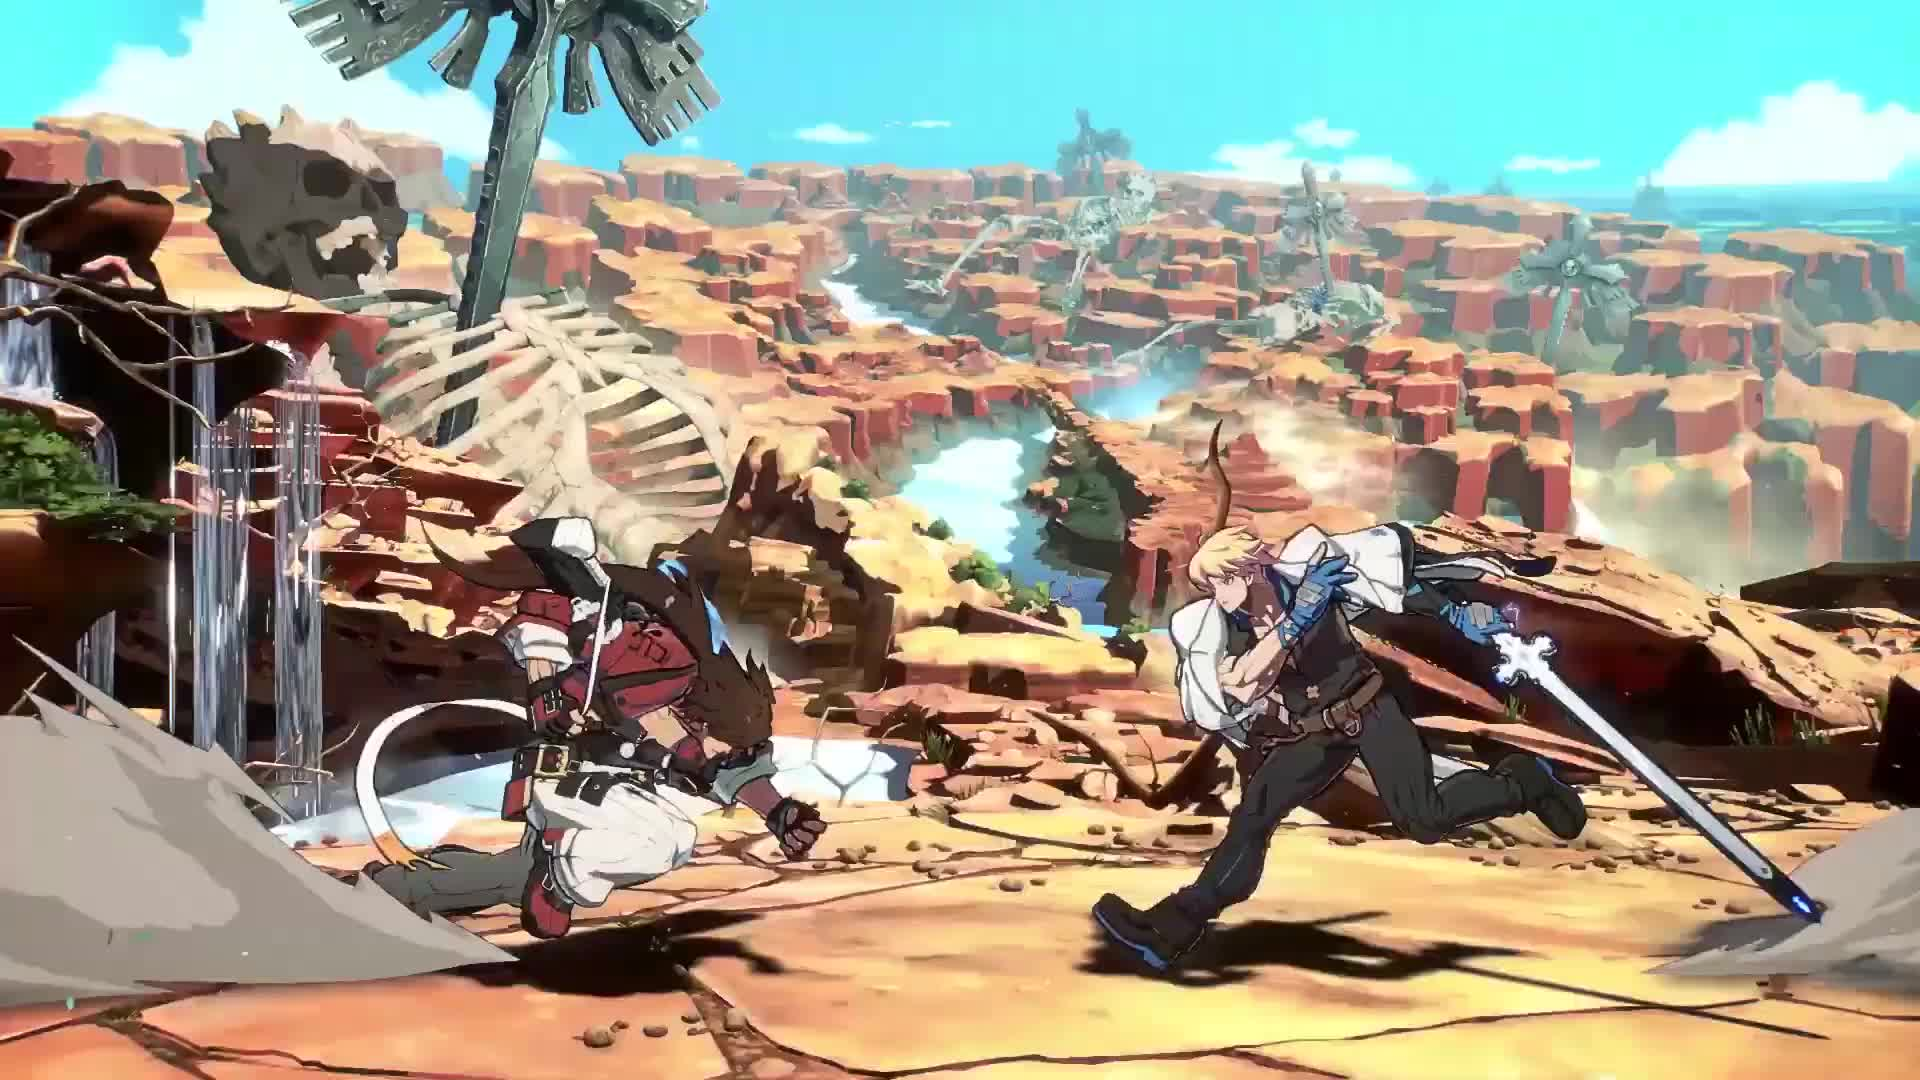 evo, guilty gear, guiltygear, Guilty Gear 2020 part 1 GIFs